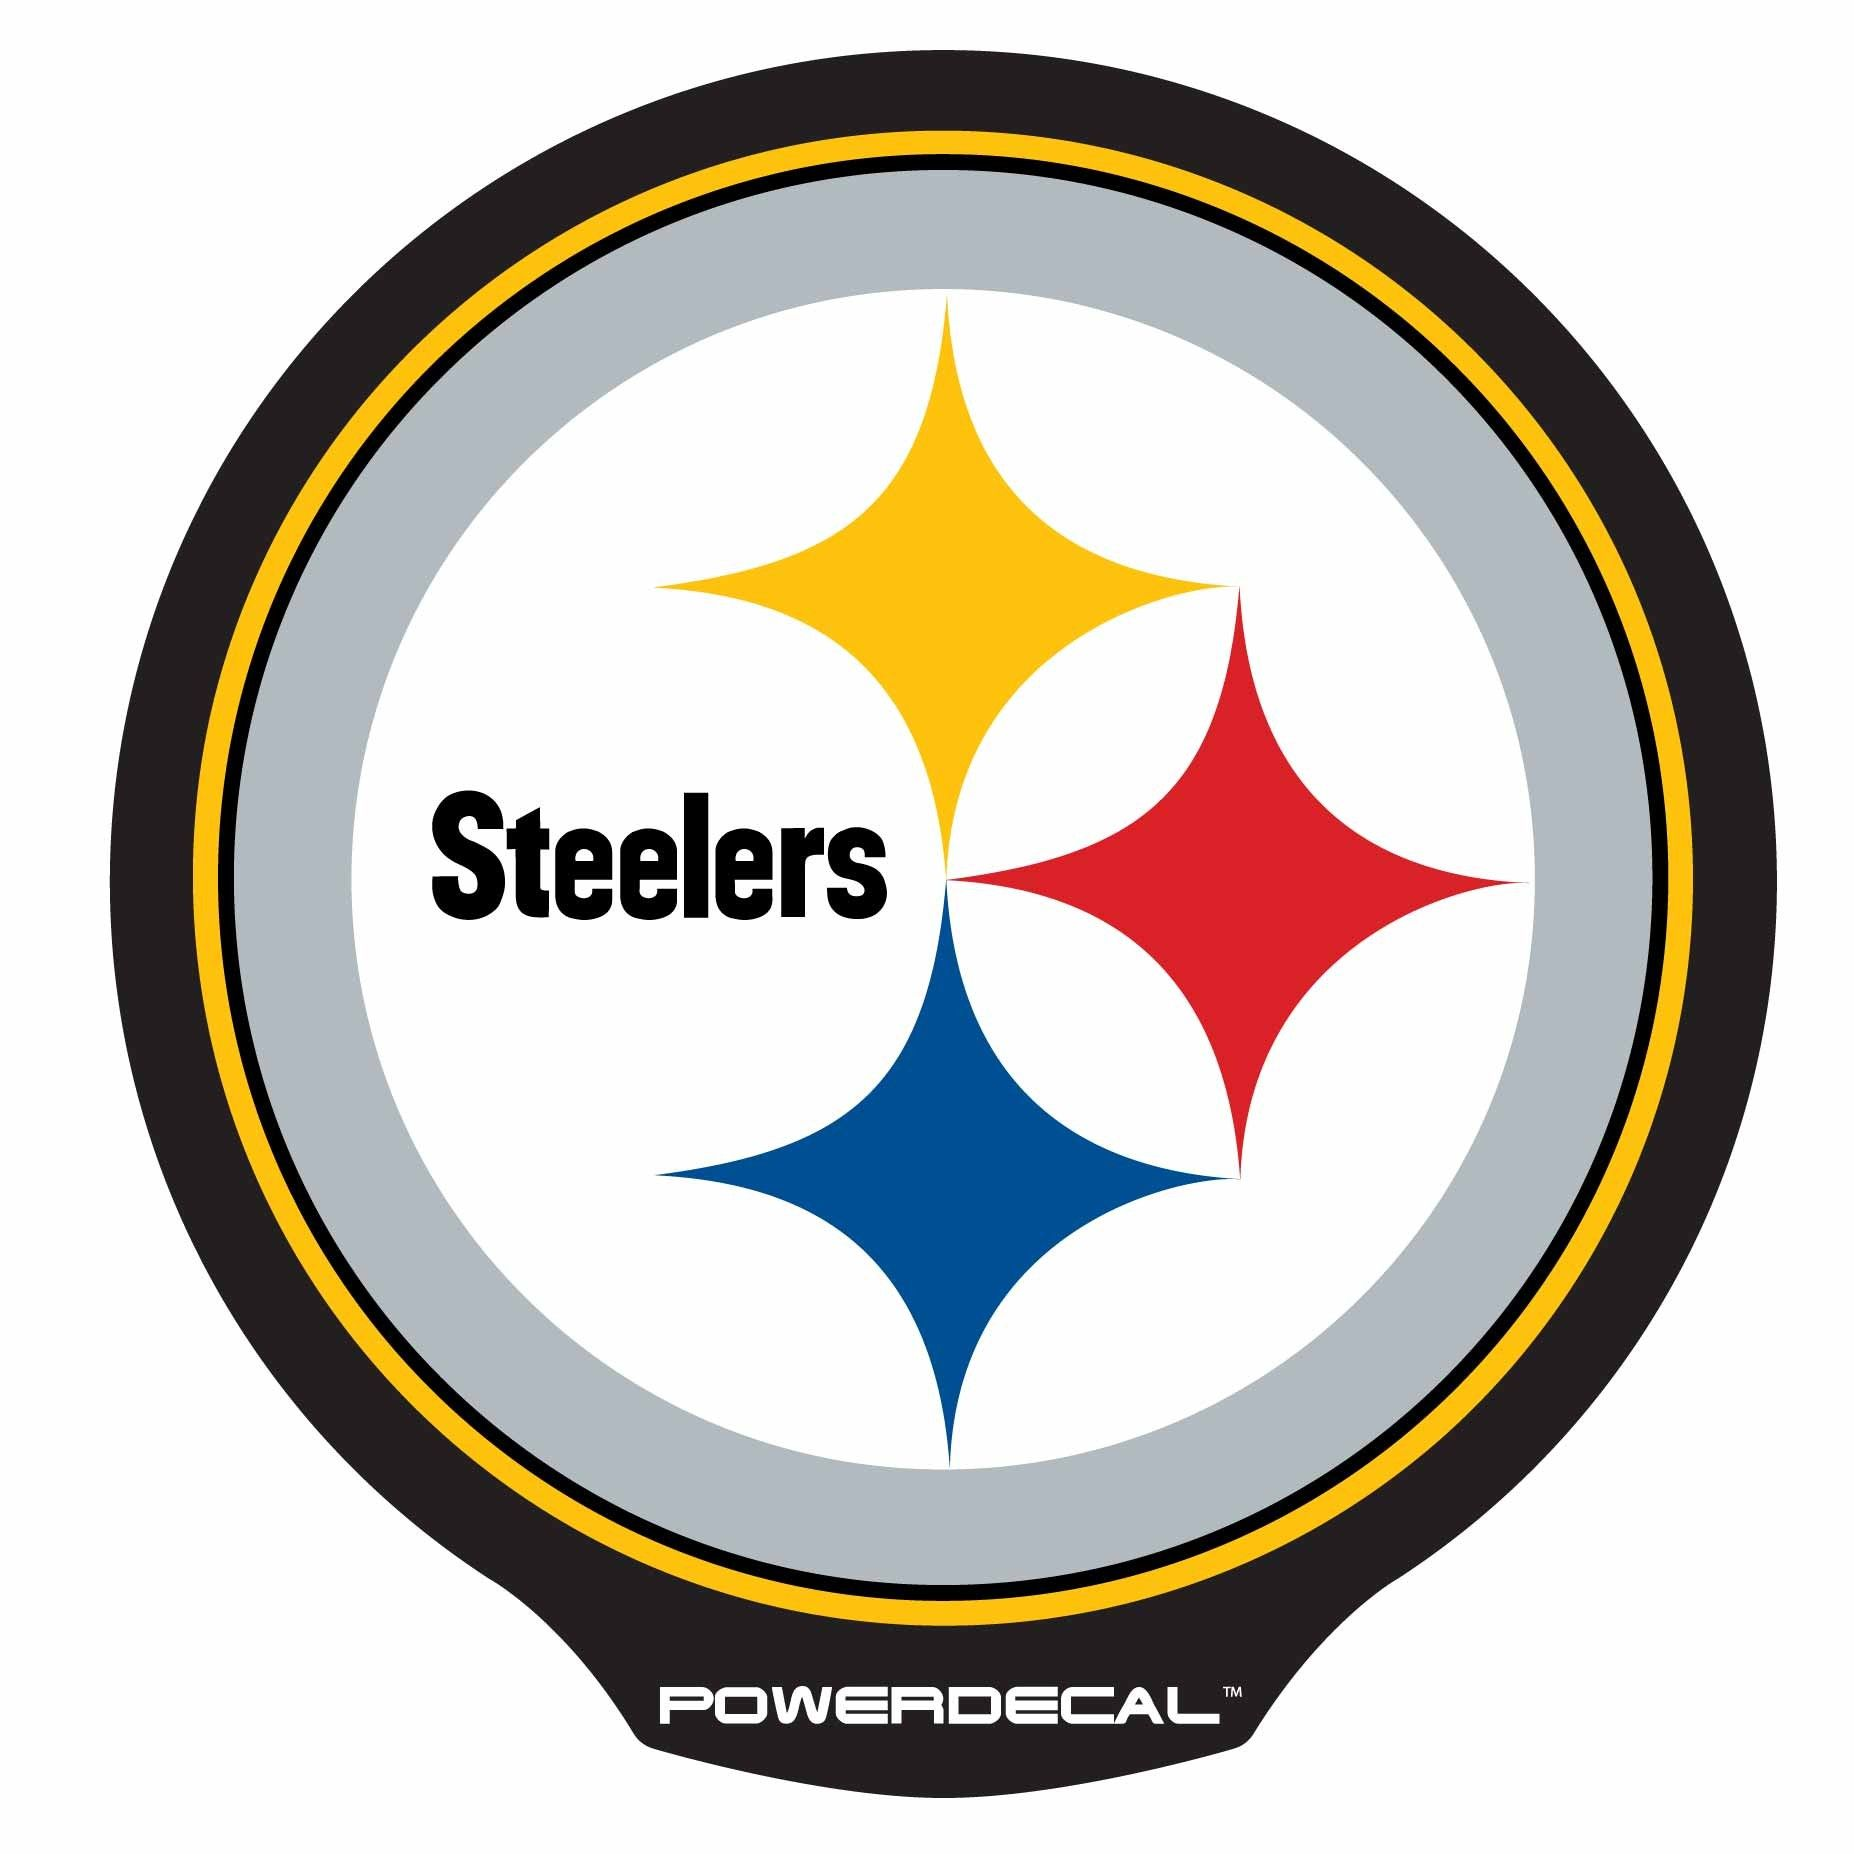 pittsburgh steelers flags and banners nfl artwork inspiration rh pinterest com nfl clip art free nfl clipart helmets